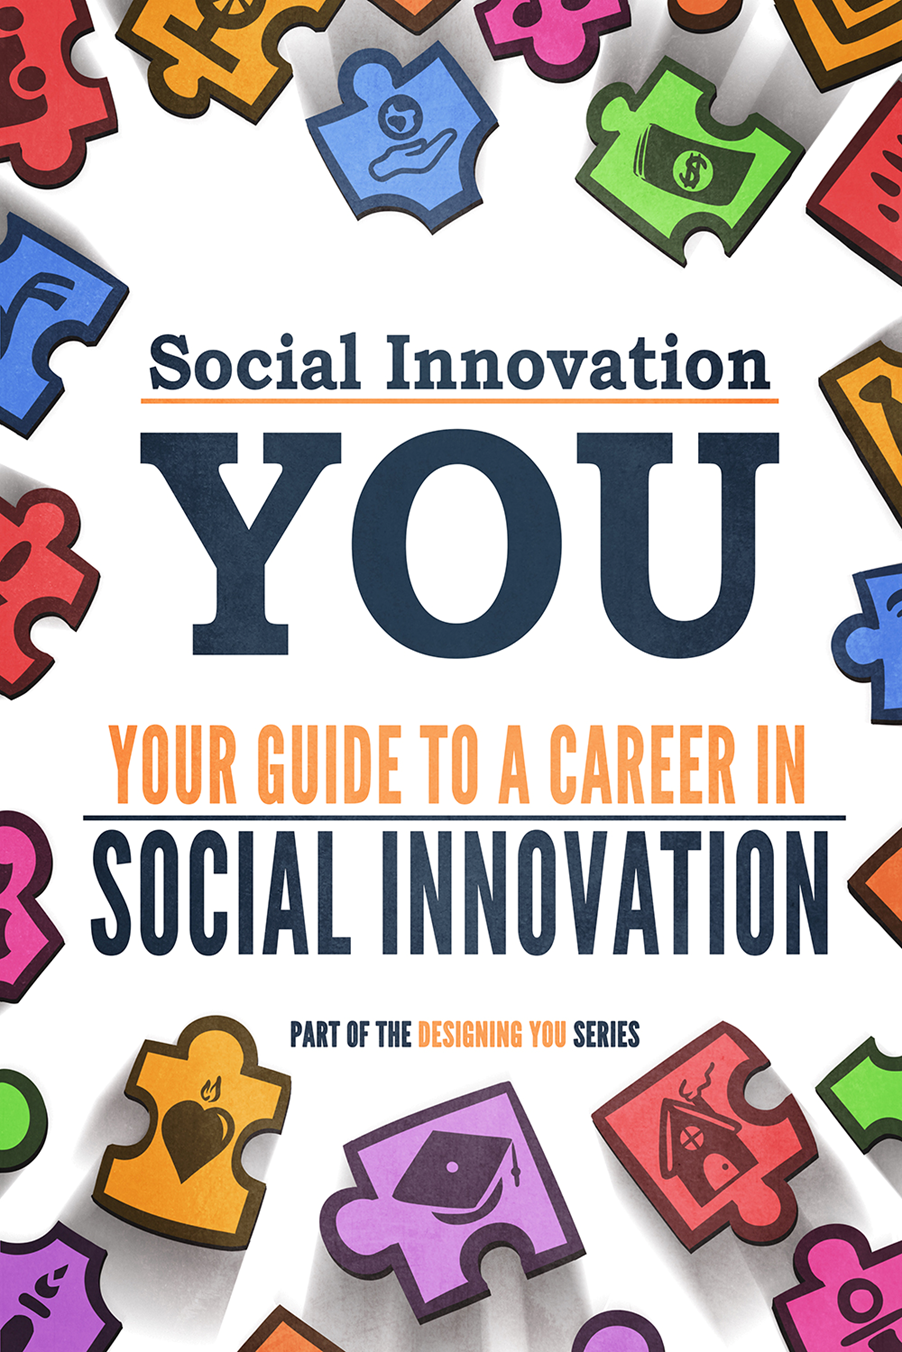 Social Innovation YOU.png